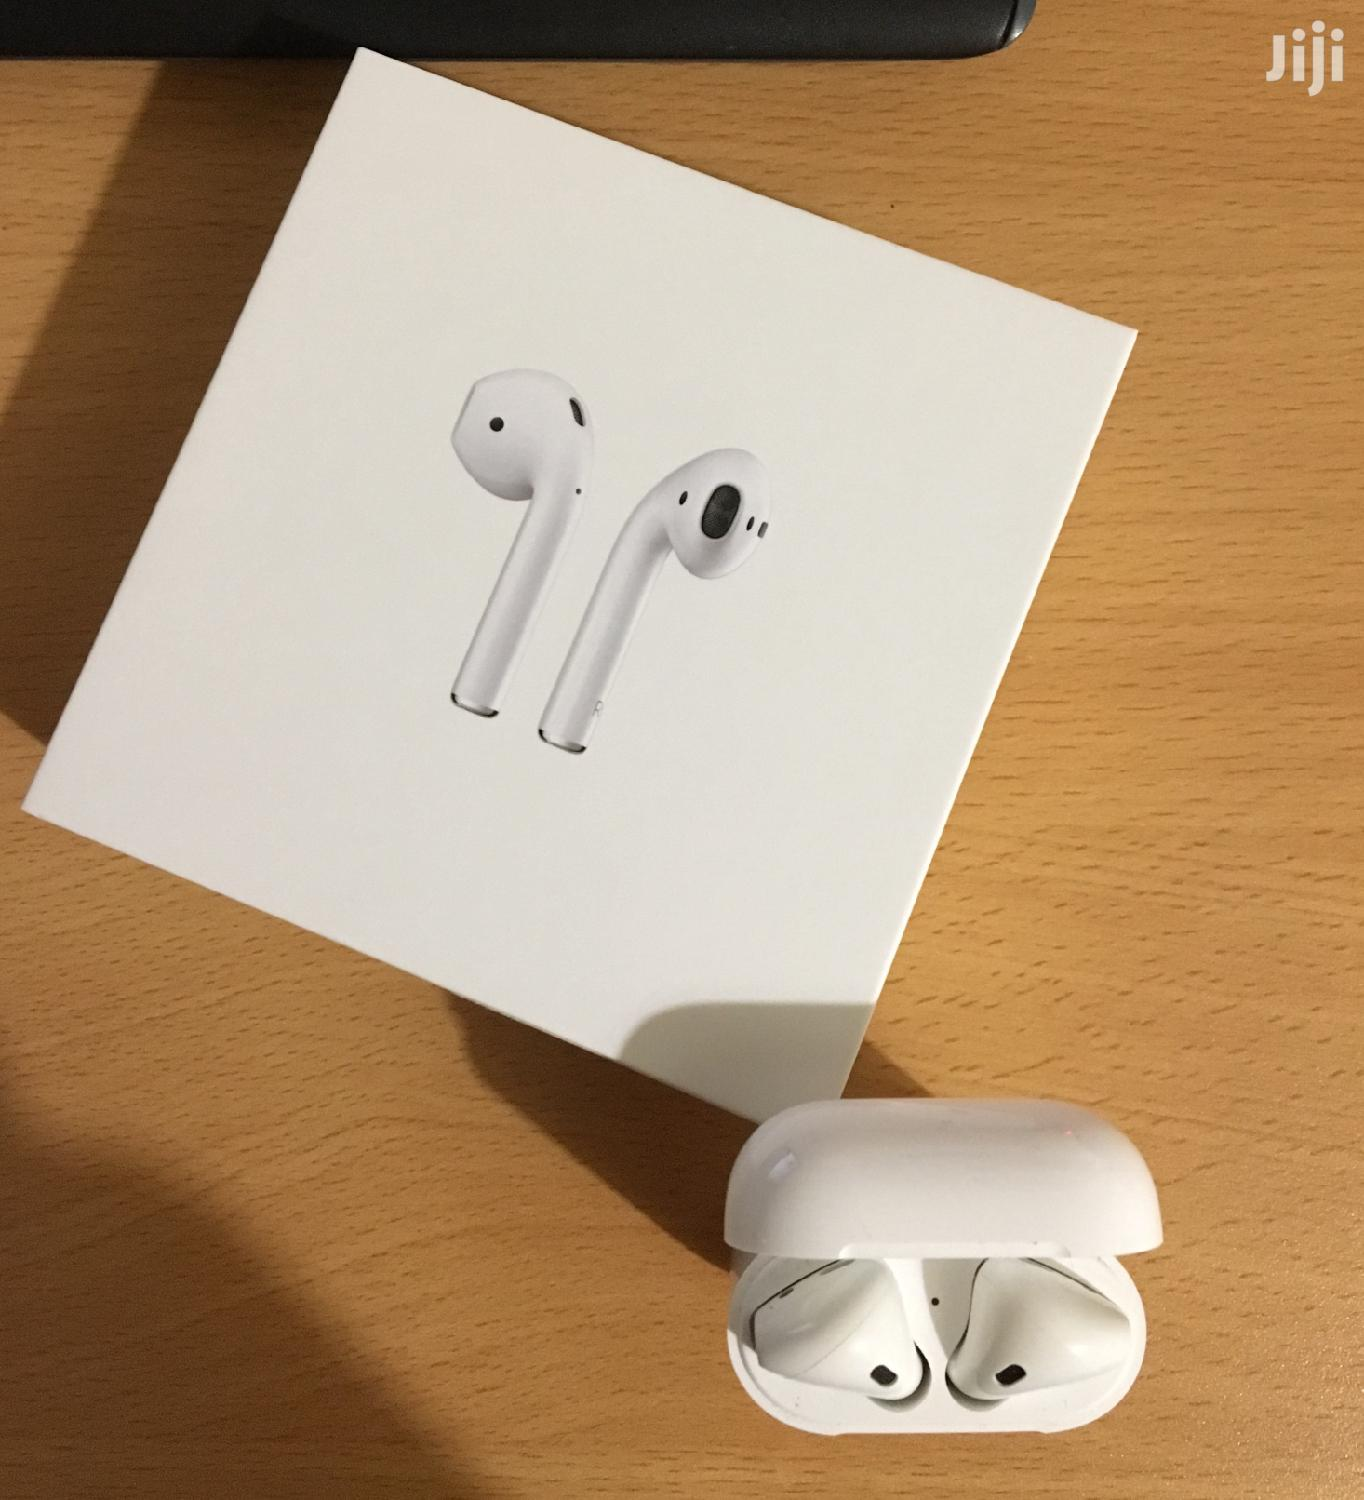 Airpod 2 Sealed   Accessories for Mobile Phones & Tablets for sale in Achimota, Greater Accra, Ghana